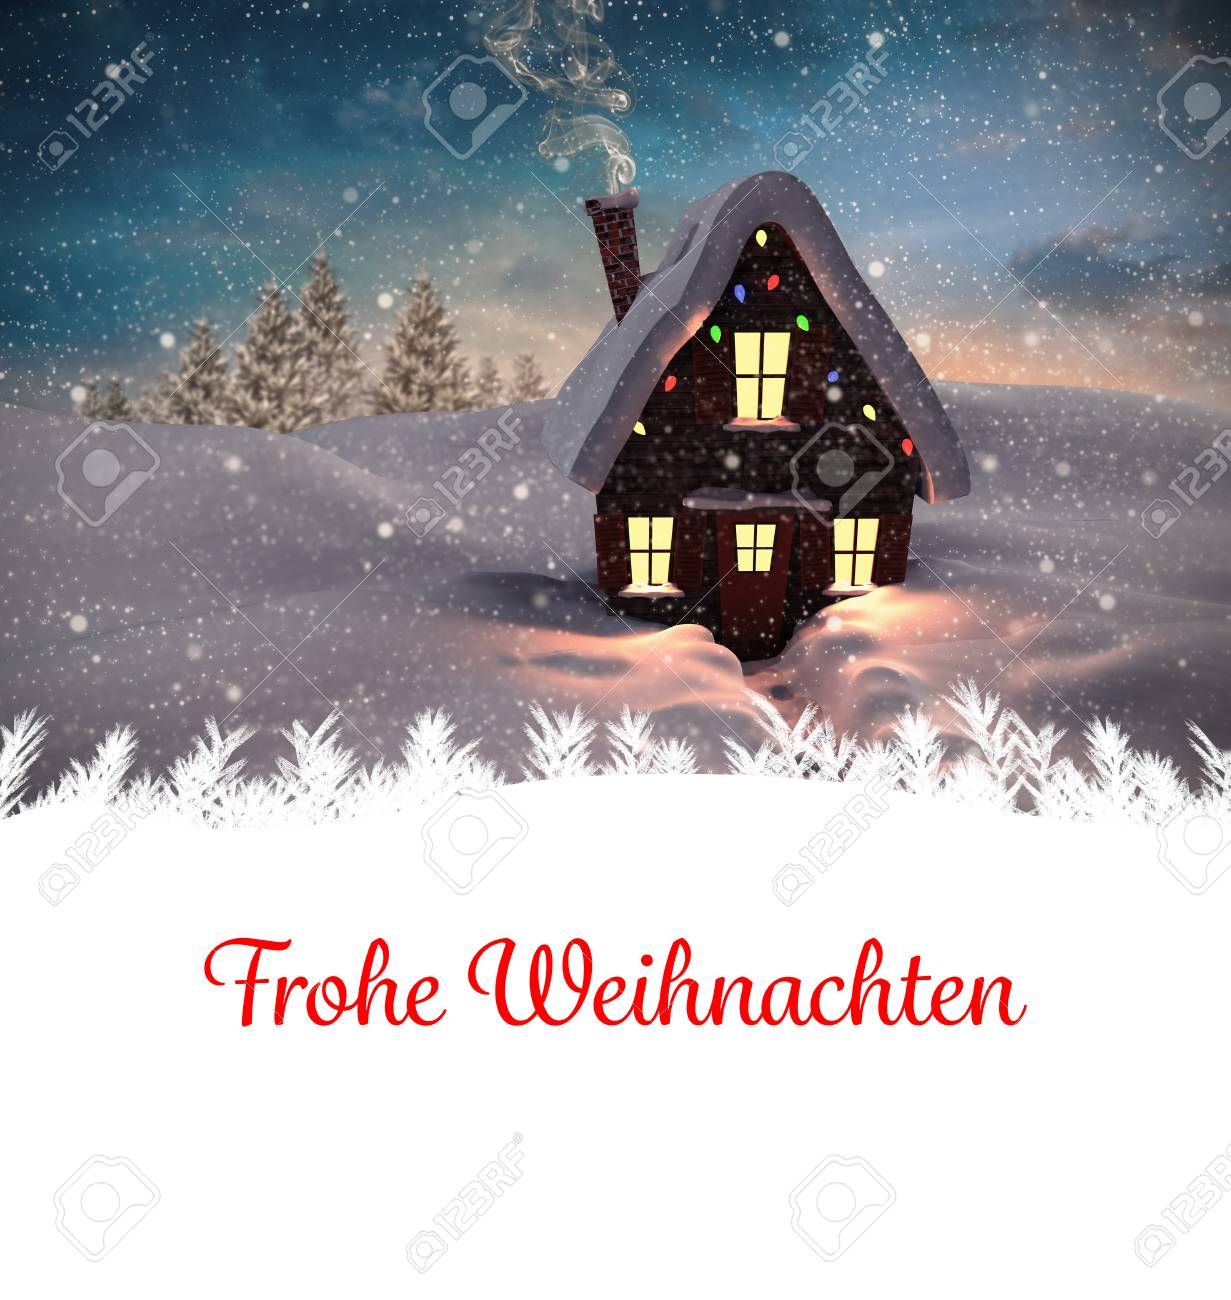 Christmas Greeting In German Against Christmas House Stock Photo